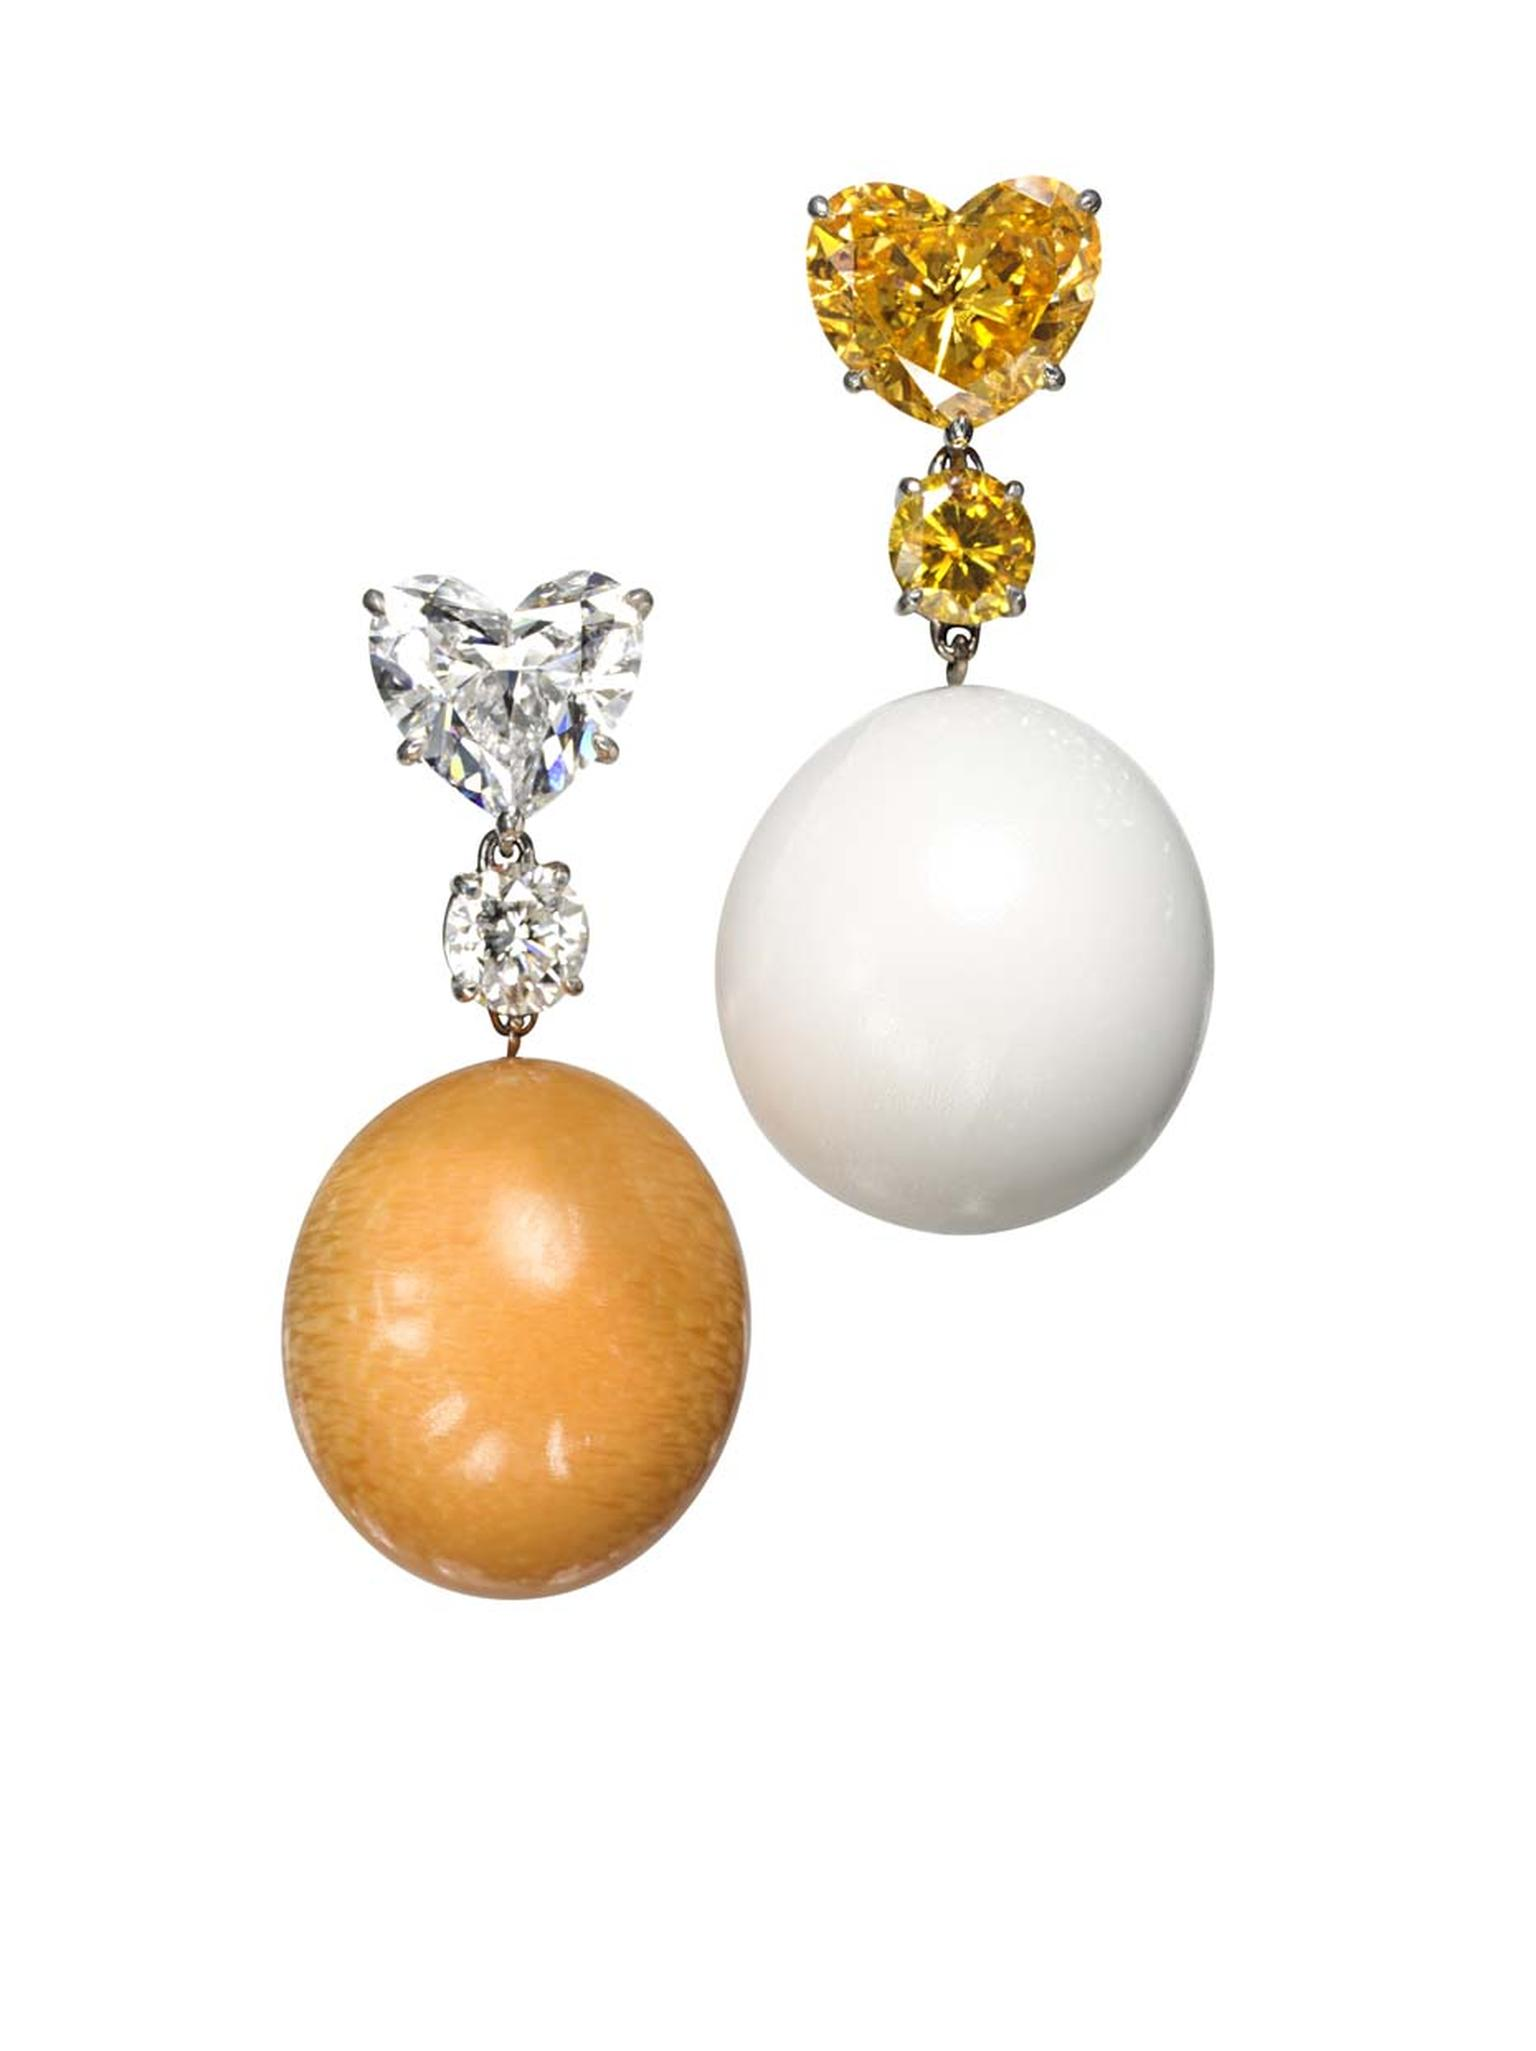 Bogh-Art Moi-Toi pearl earrings featuring one melo and one clam pearl paired with diamonds in contrasting colours for a purposely mismatched look.